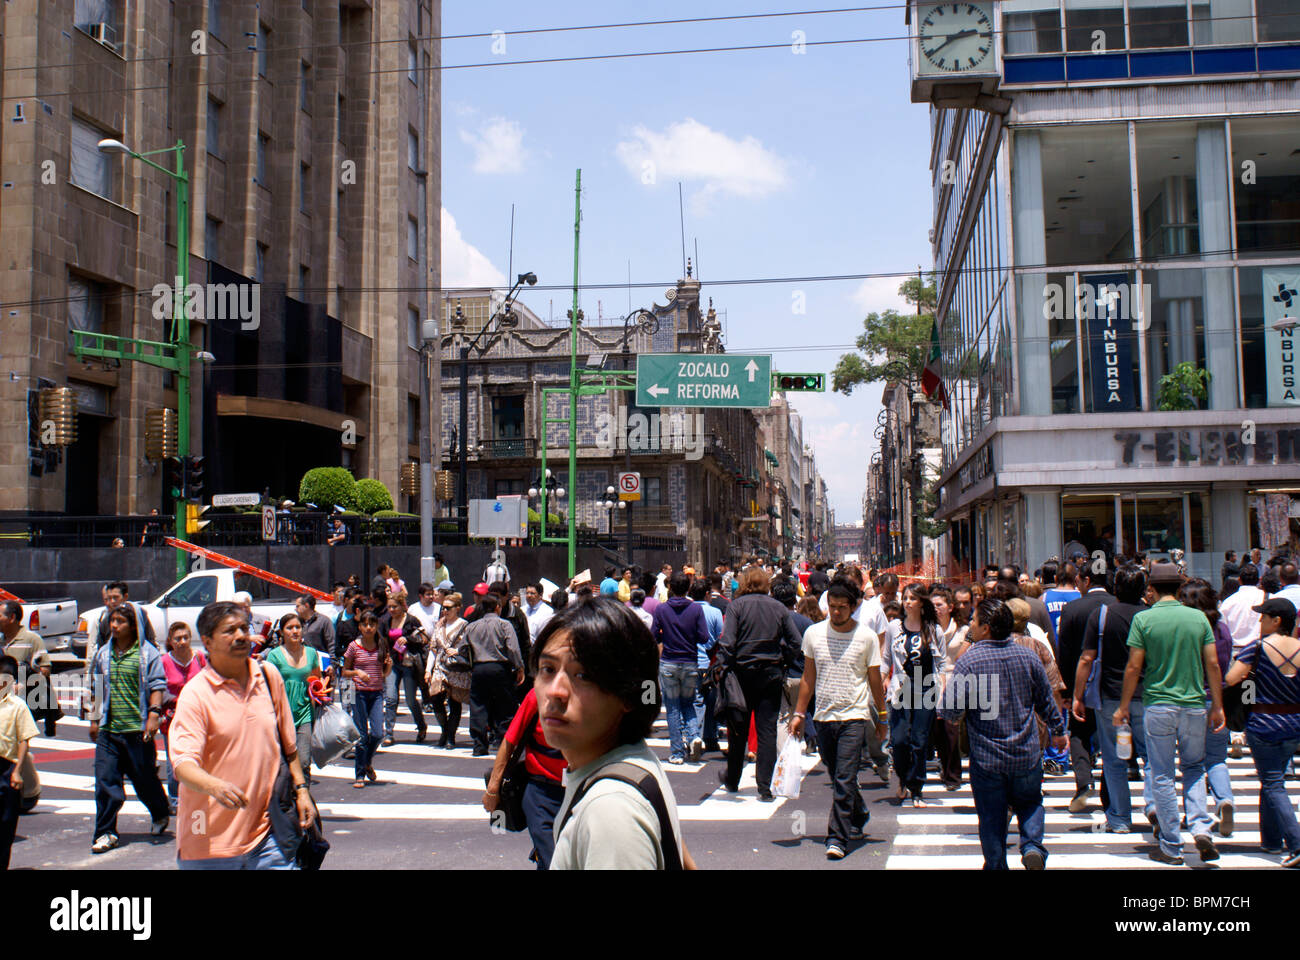 crowded-downtown-street-in-mexico-city-B